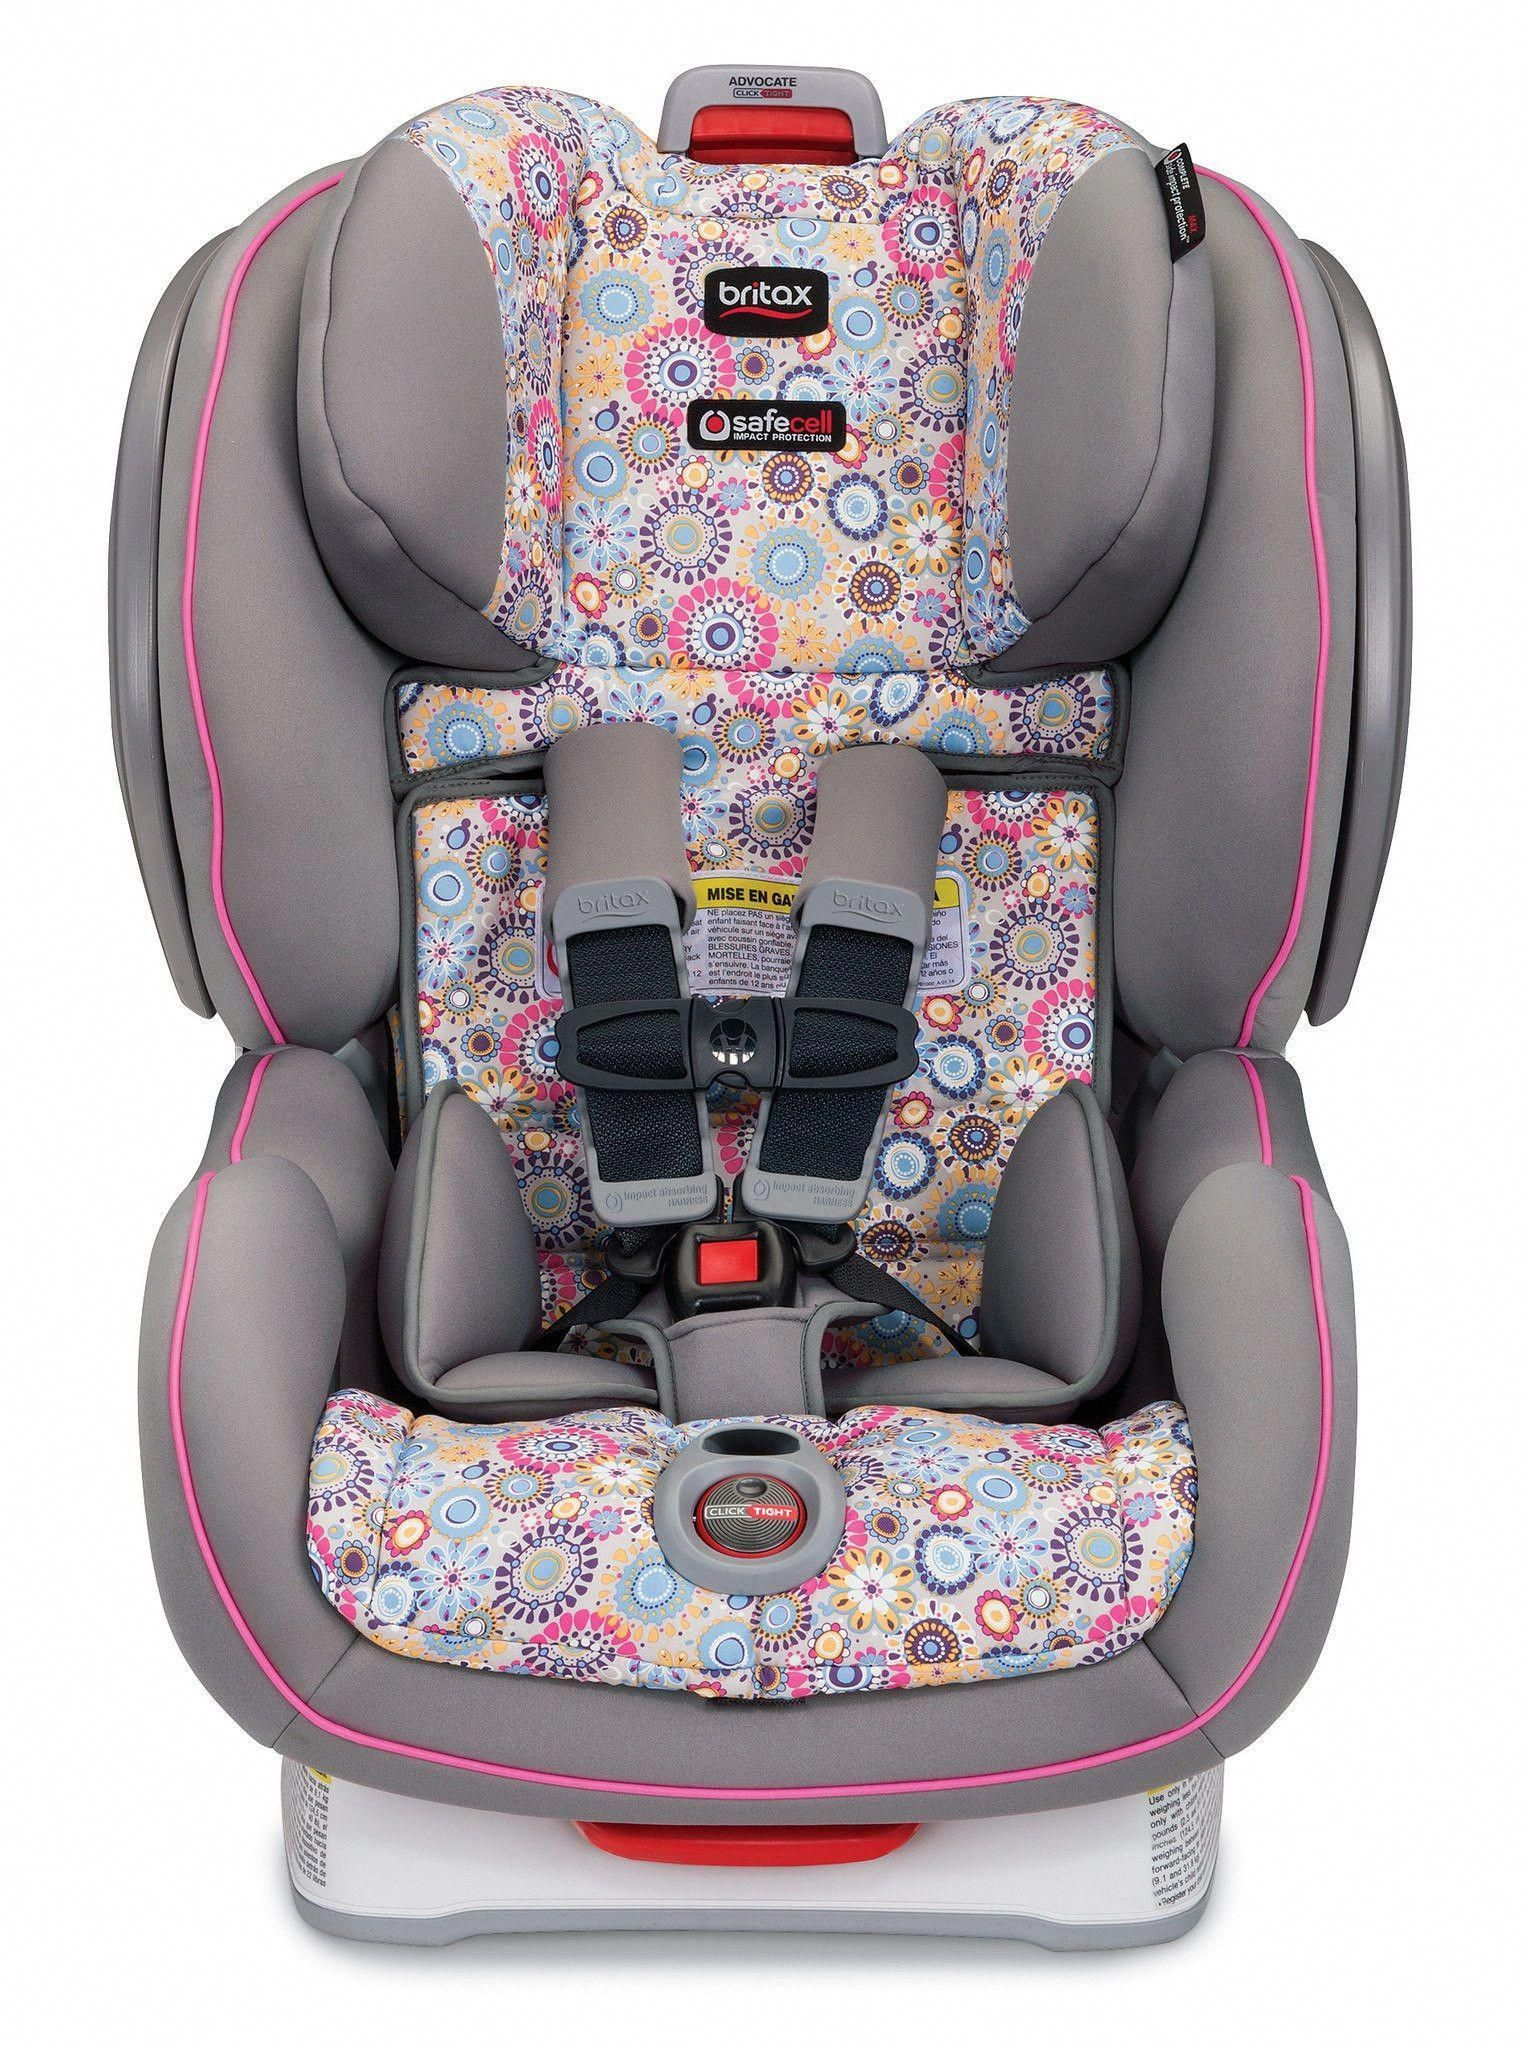 Britax Advocate Clicktight Convertible Car Seat carseat